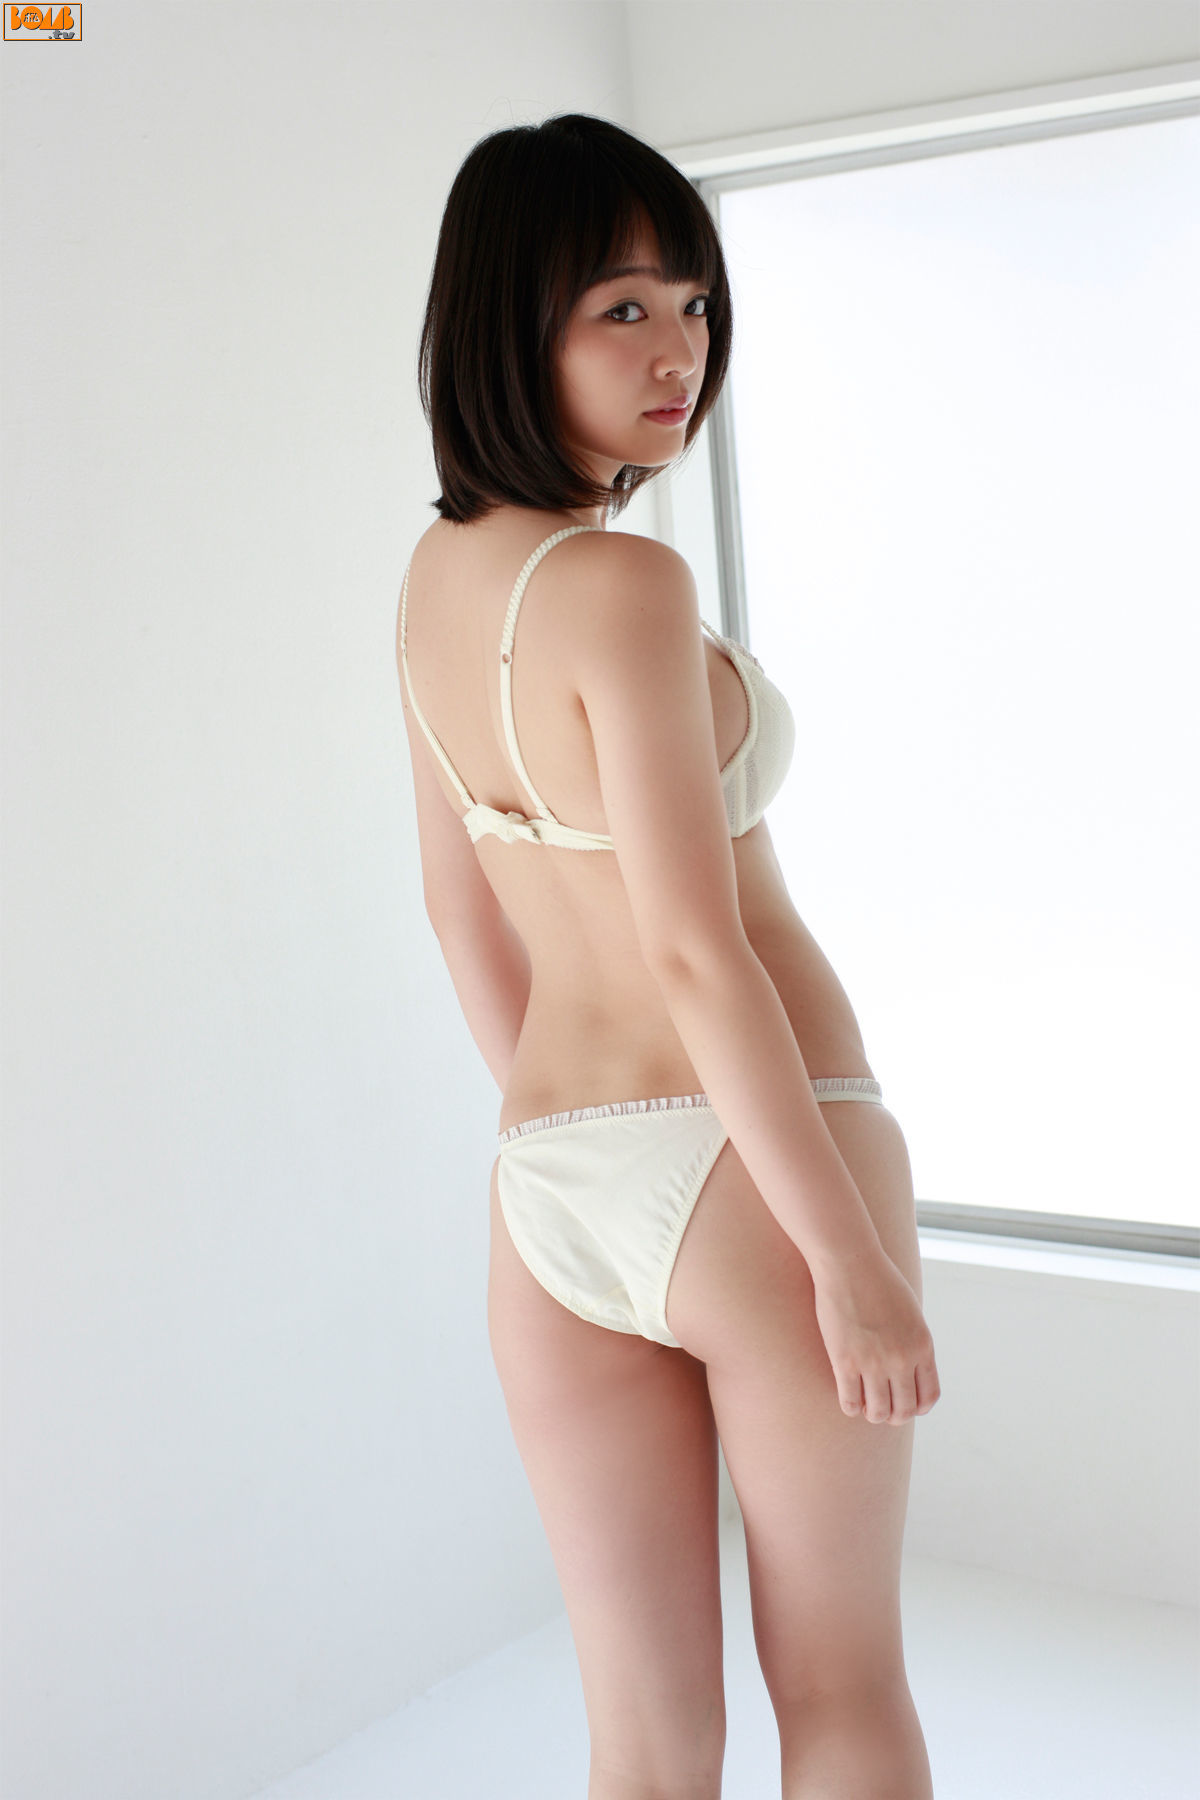 The ultimate swimsuit gravure for the next generation014